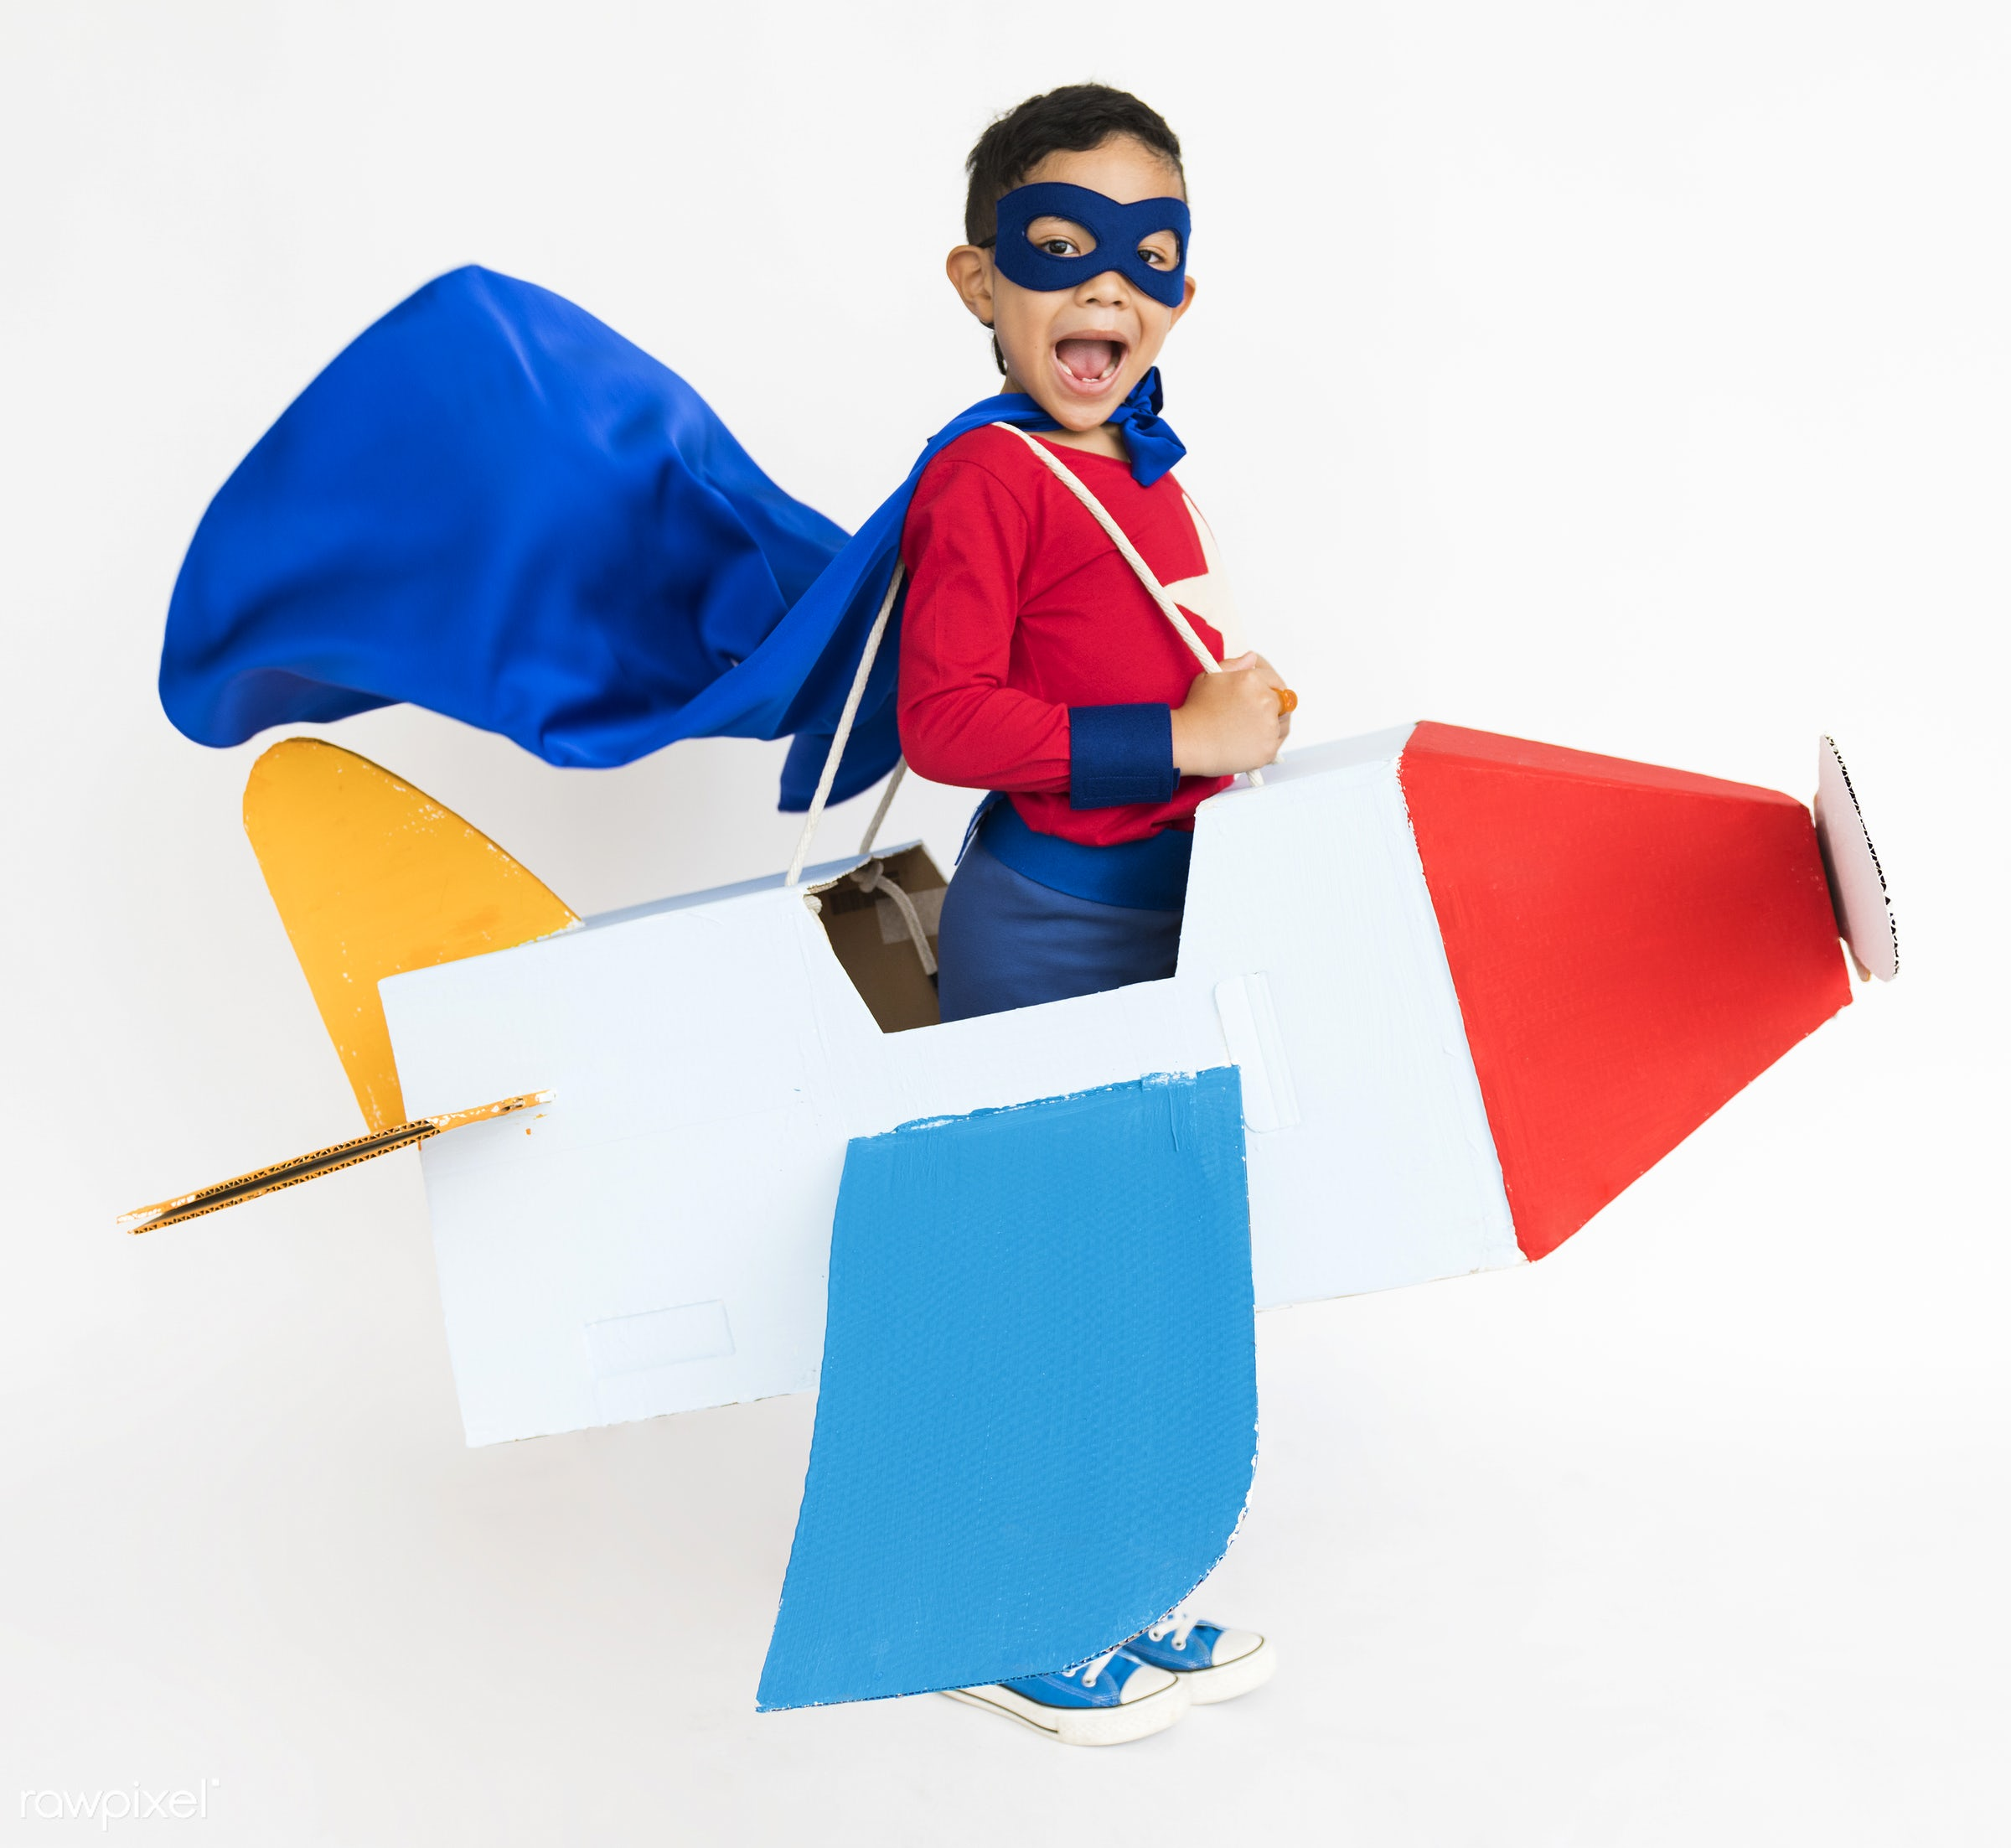 airplane, alone, boy, cheerful, child, children, costume, isolated, kid, kids, one, paper craft, playful, smiling, superhero...